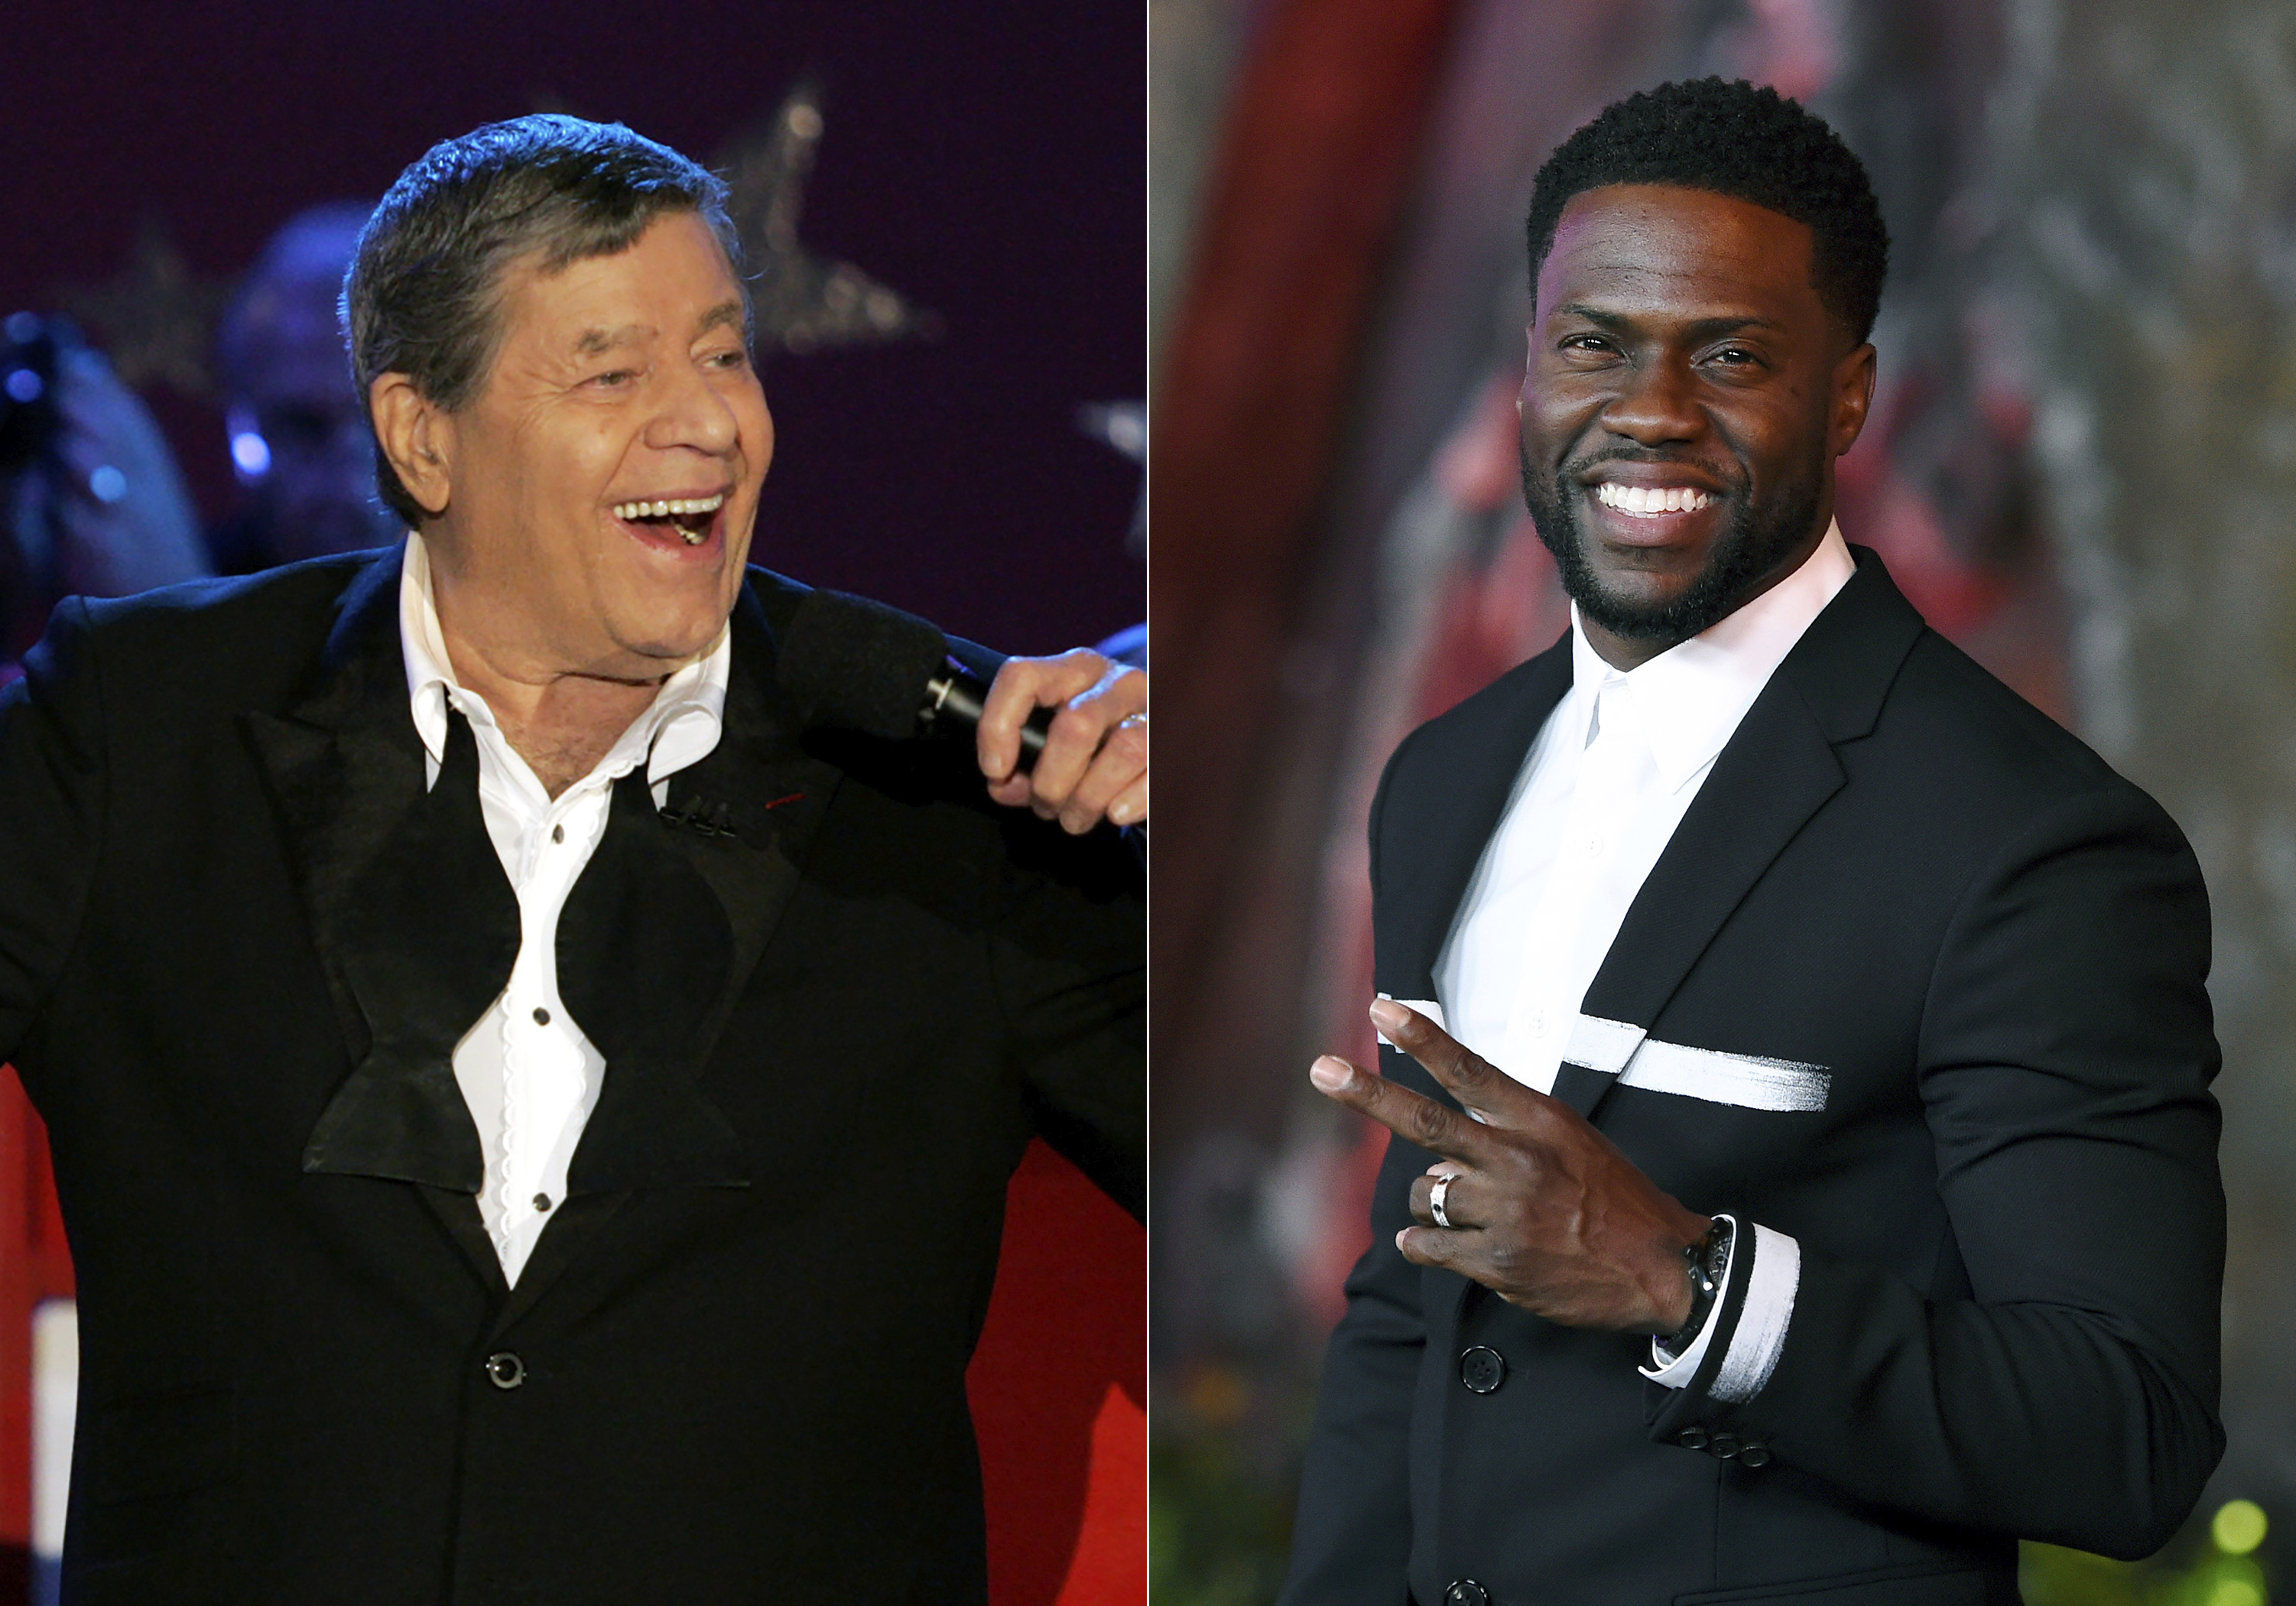 Kevin Hart is hosting a re-imagined online fundraiser for the Muscular Dystrophy Association, which, for decades was hosted by Jerry Lewis.